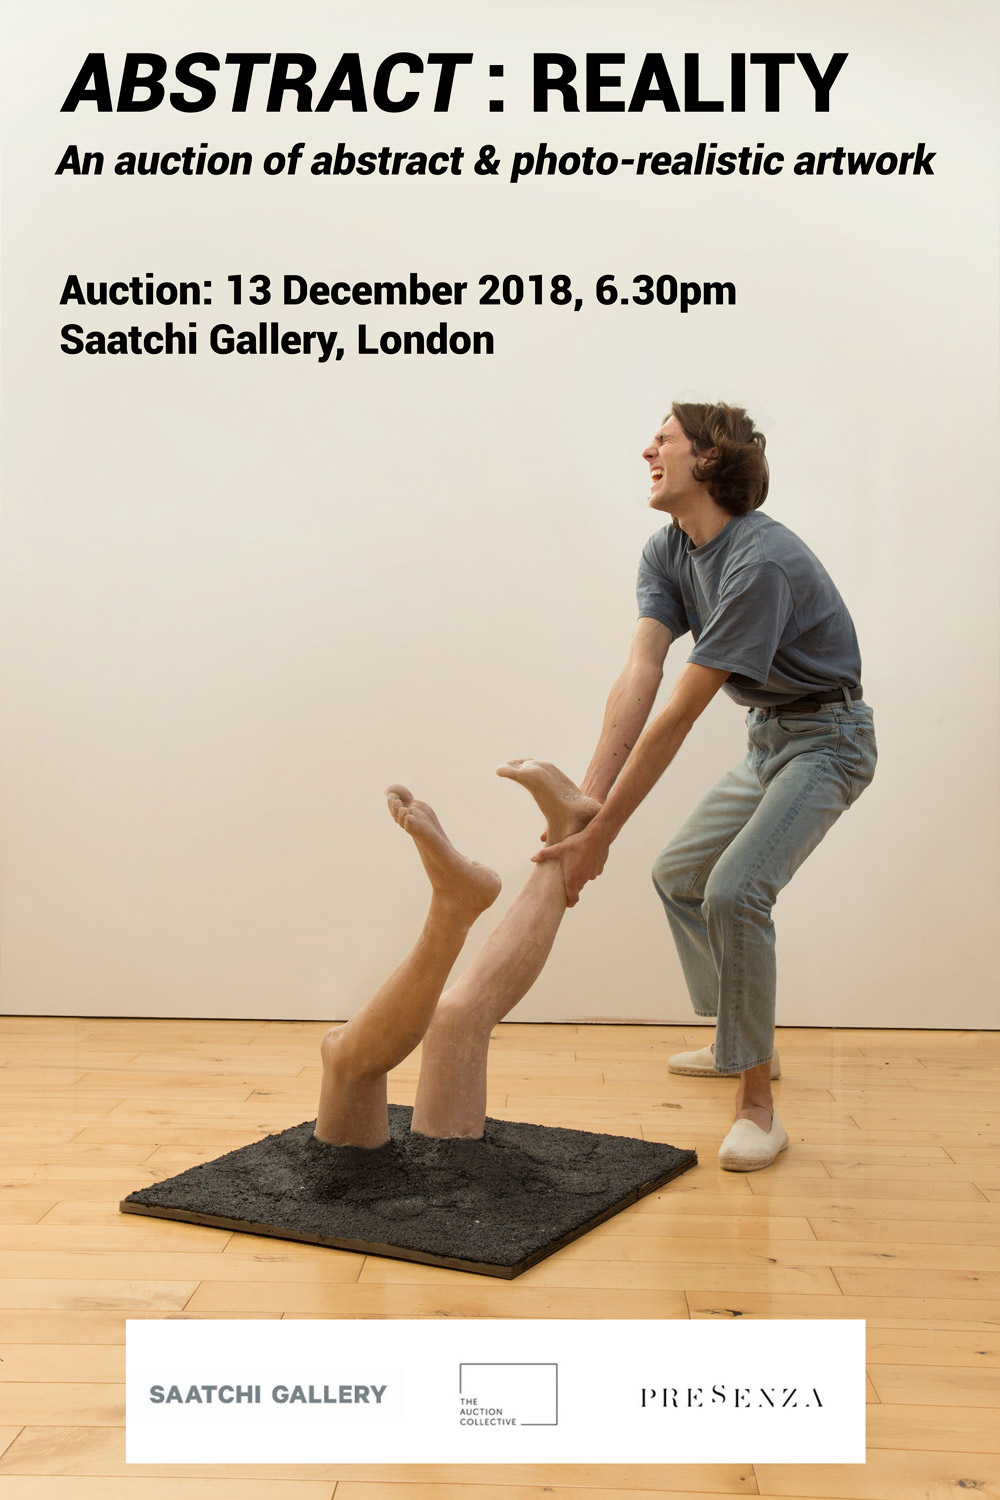 6th to 13th of December at the Saatchi Gallery / London. The auction will take place at 7.00 pm on Thursday, 8th of December.